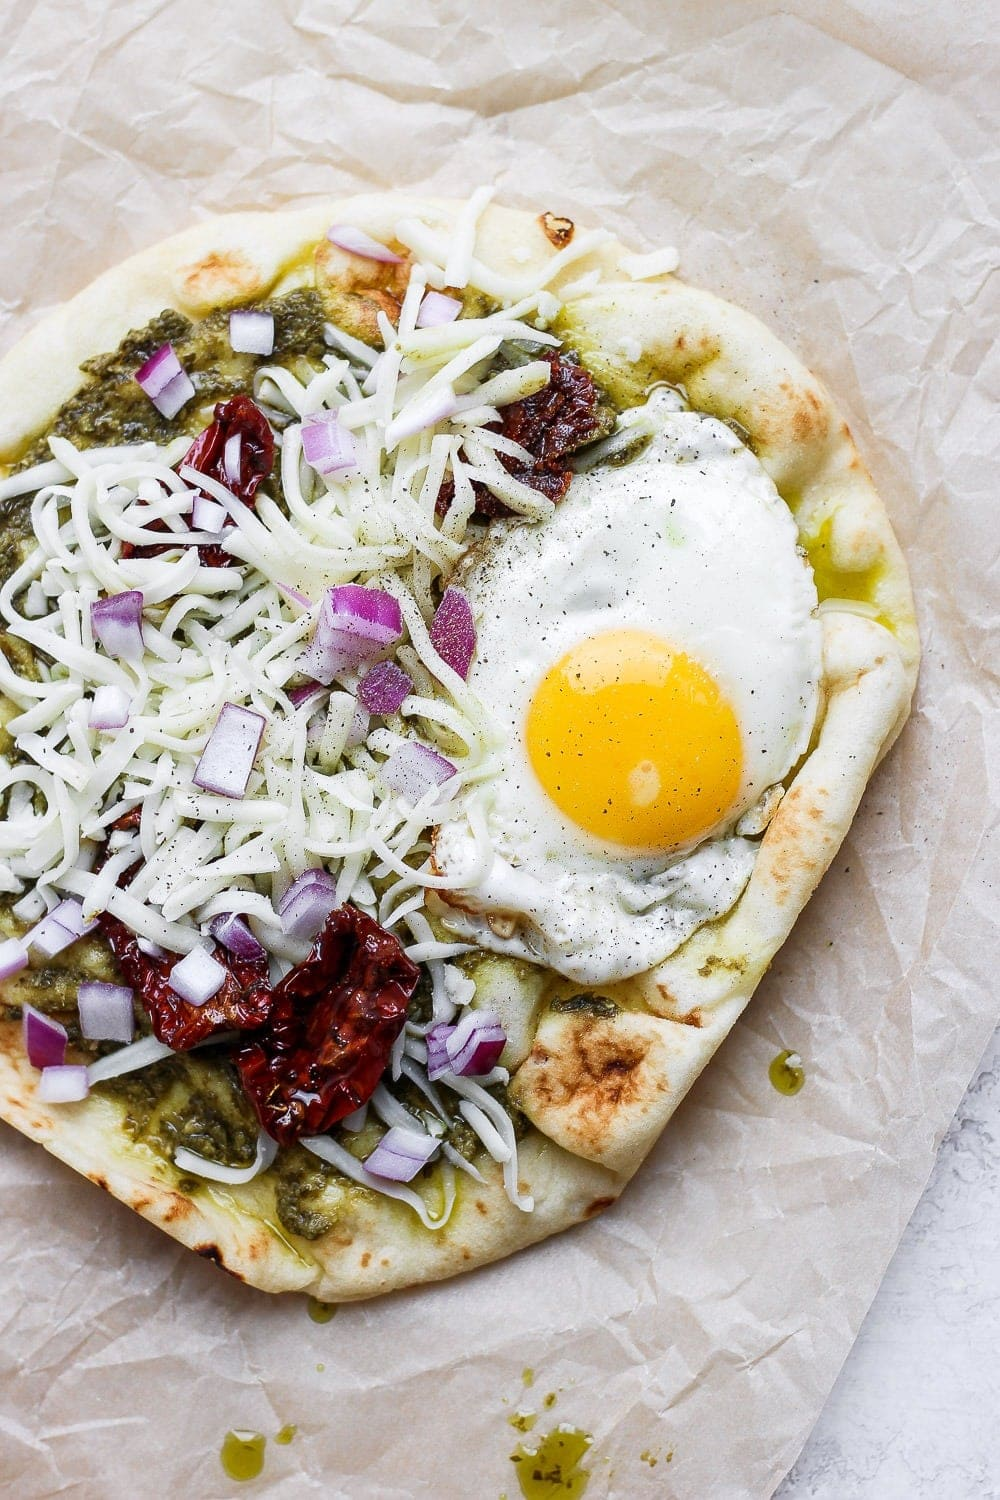 Naan pizza topped with pesto, sun dried tomatoes, cheese, and a fried egg.